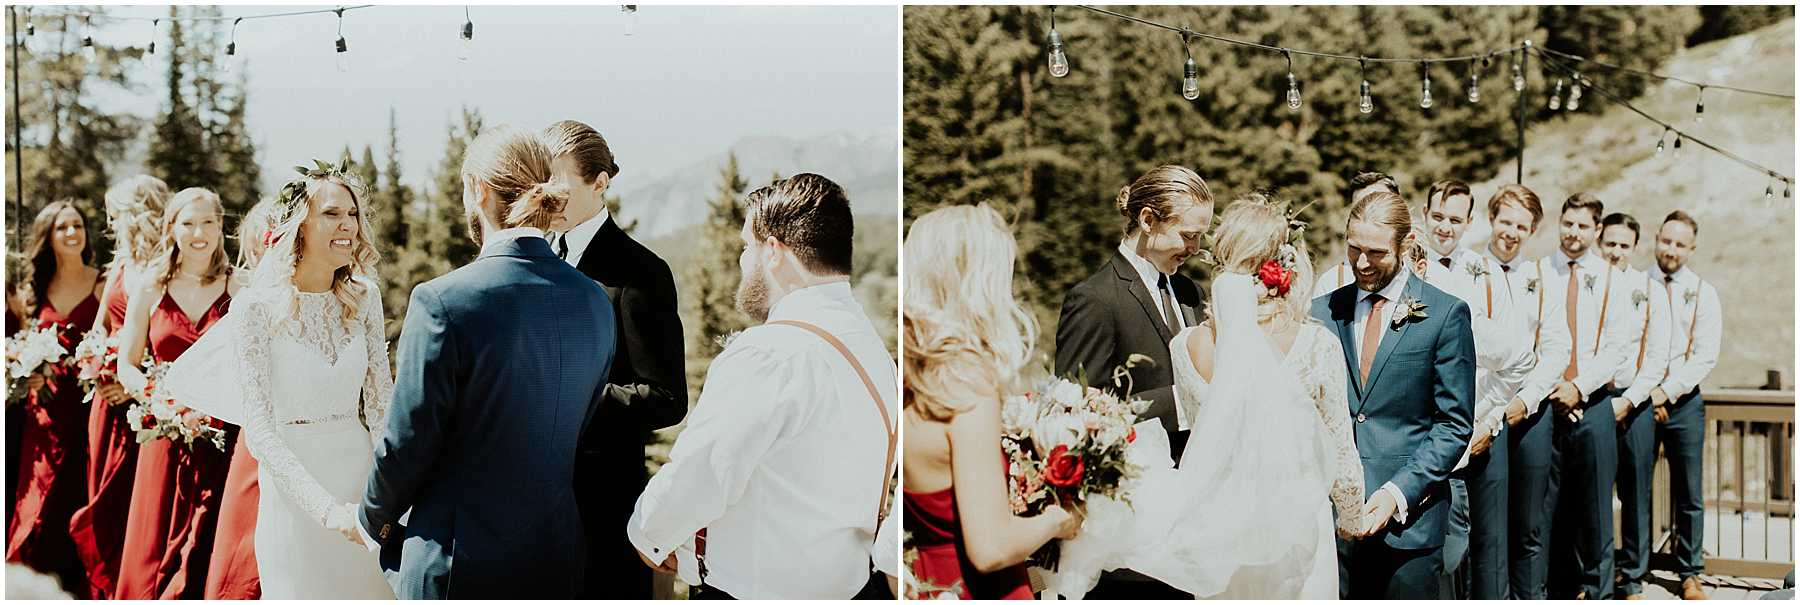 crested_butte_intimate_wedding_colorado_0093.jpg